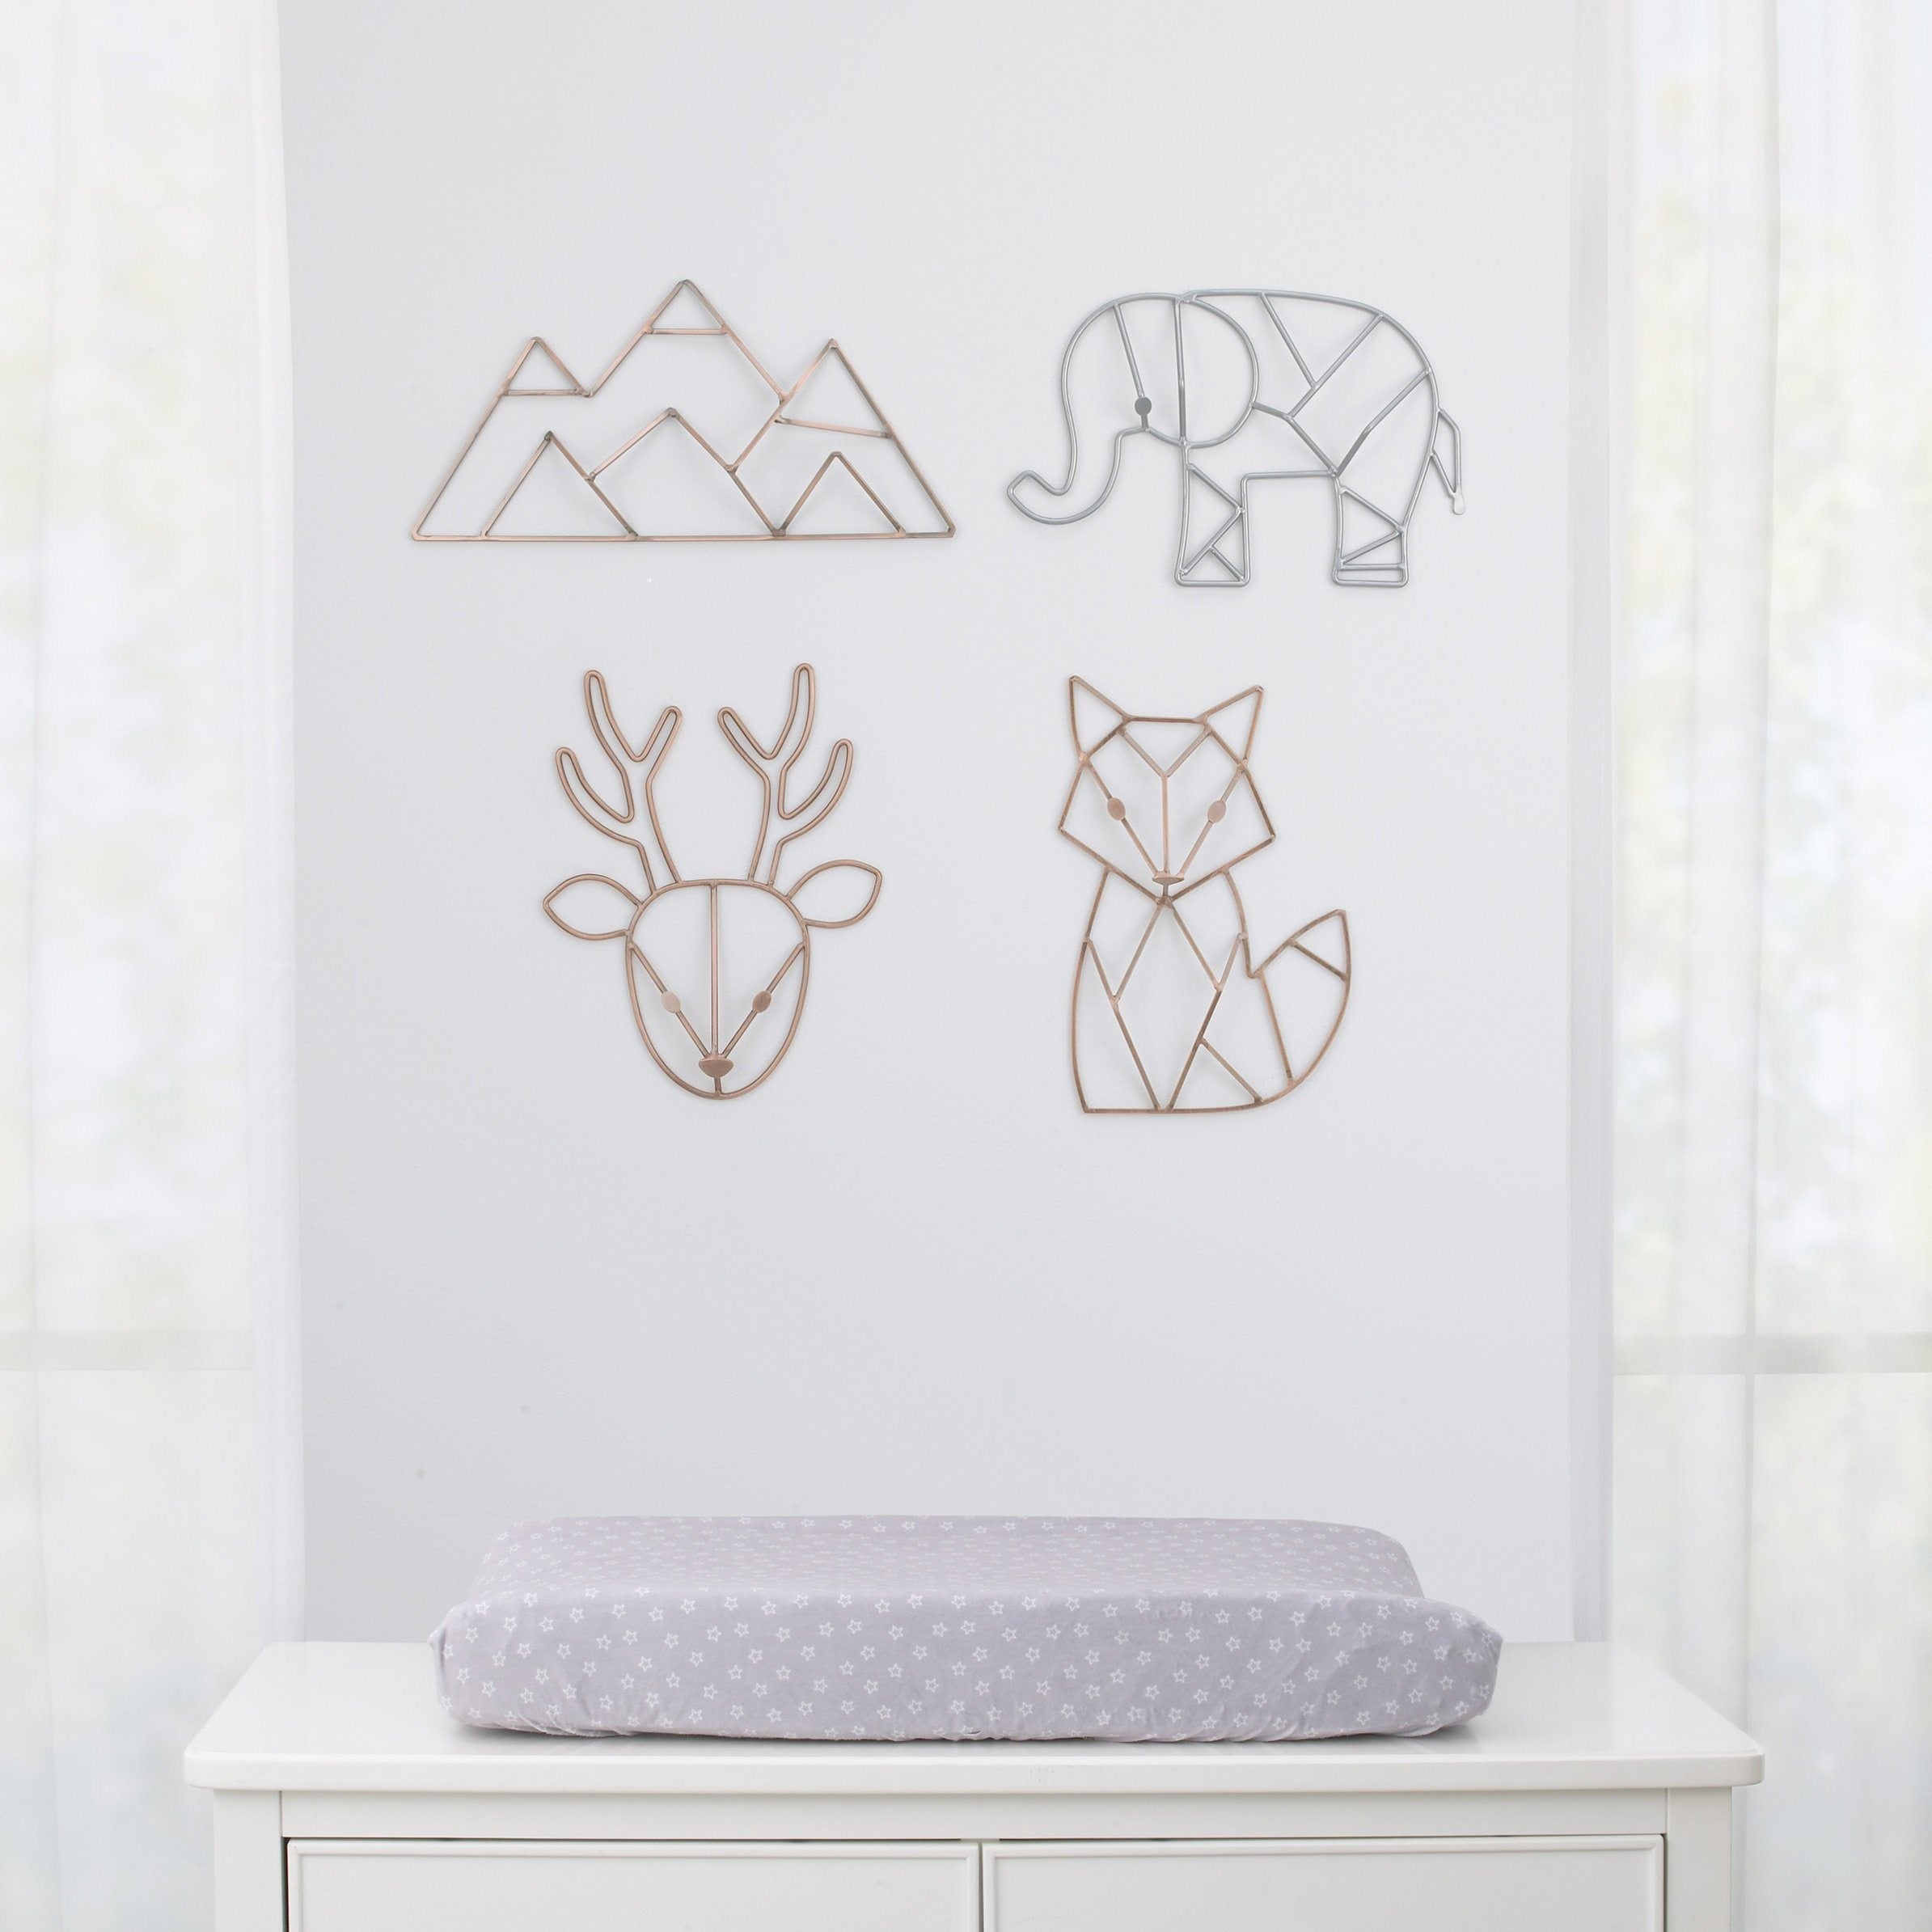 Fox Shaped Wire Nursery Wall Decor - Copper Finish - Project Nursery